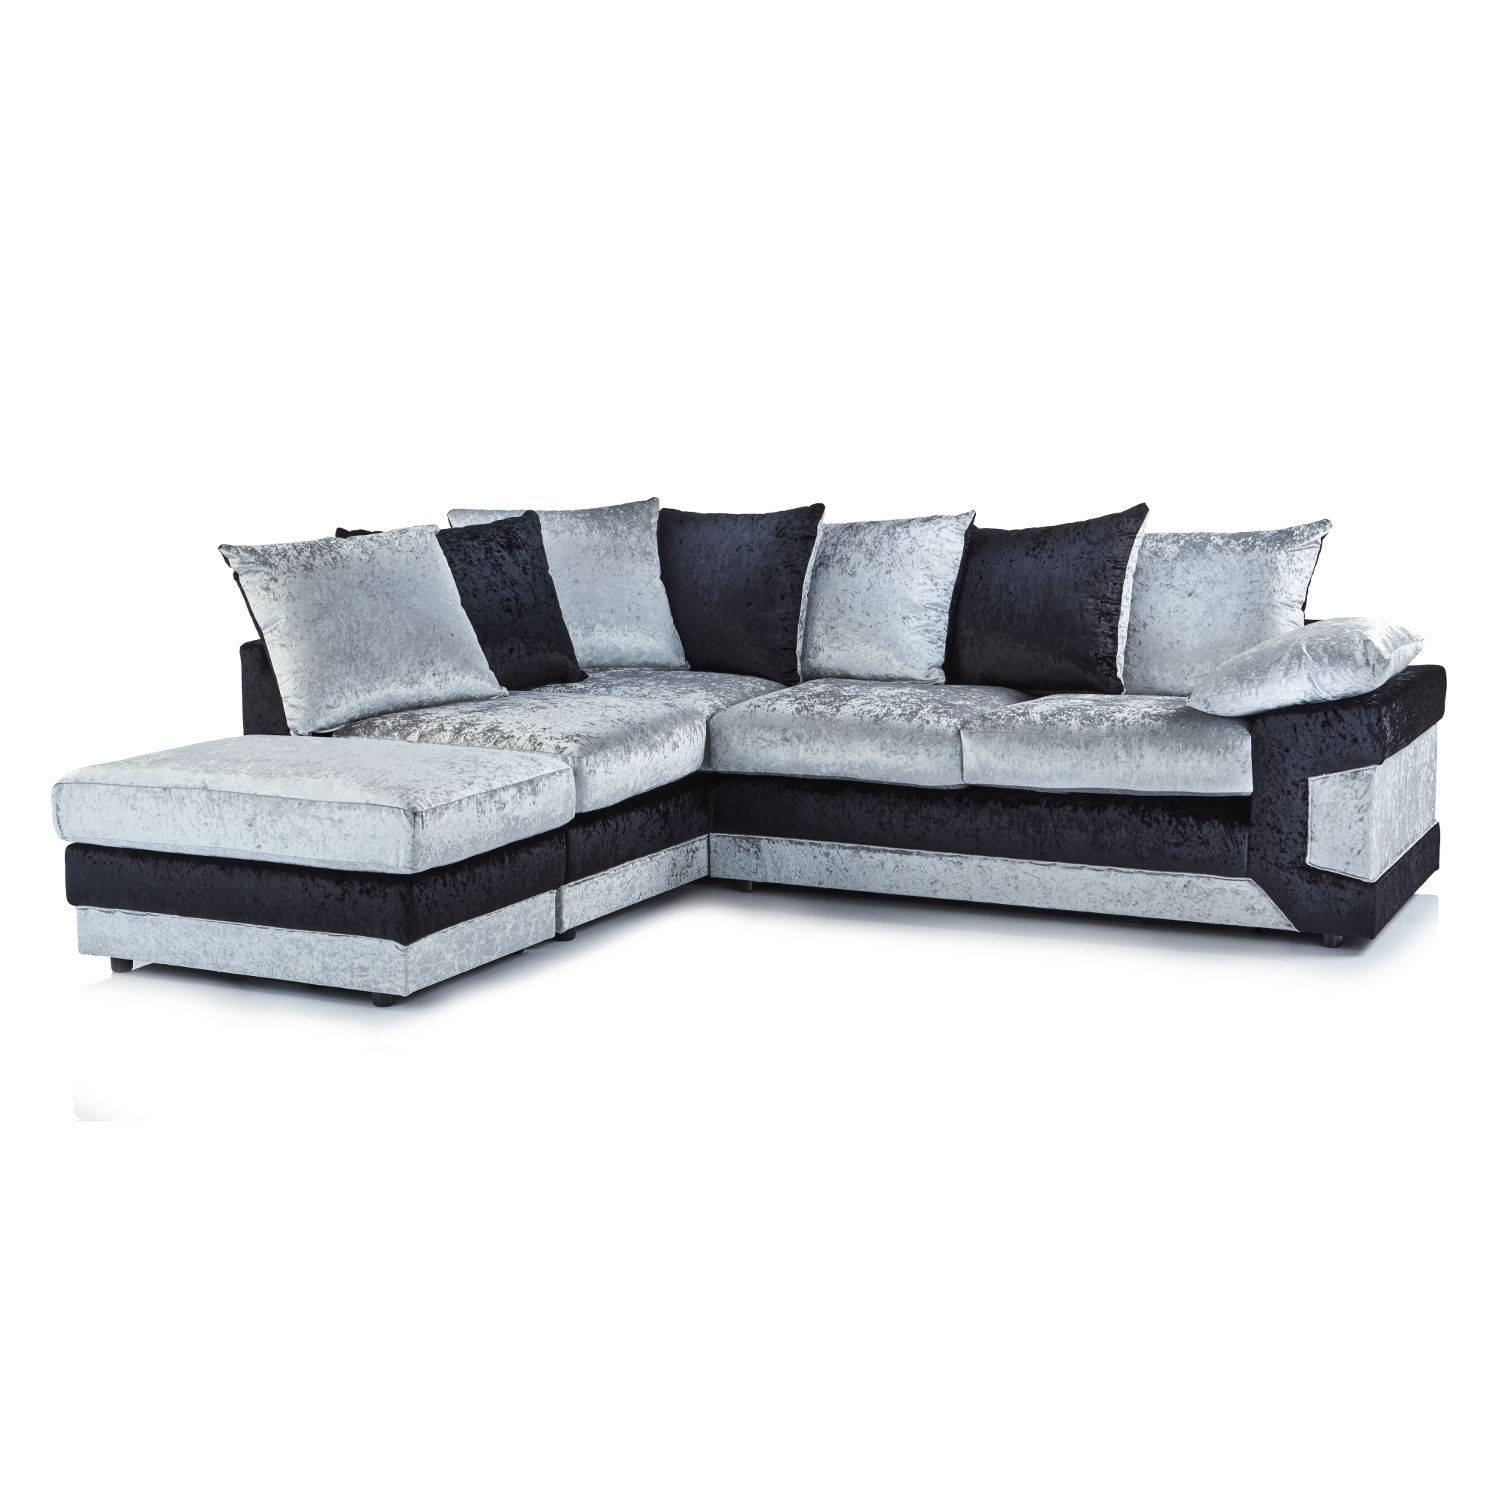 Crushed Velvet Furniture | Sofas, Beds, Chairs, Cushions regarding Black Velvet Sofas (Image 9 of 30)